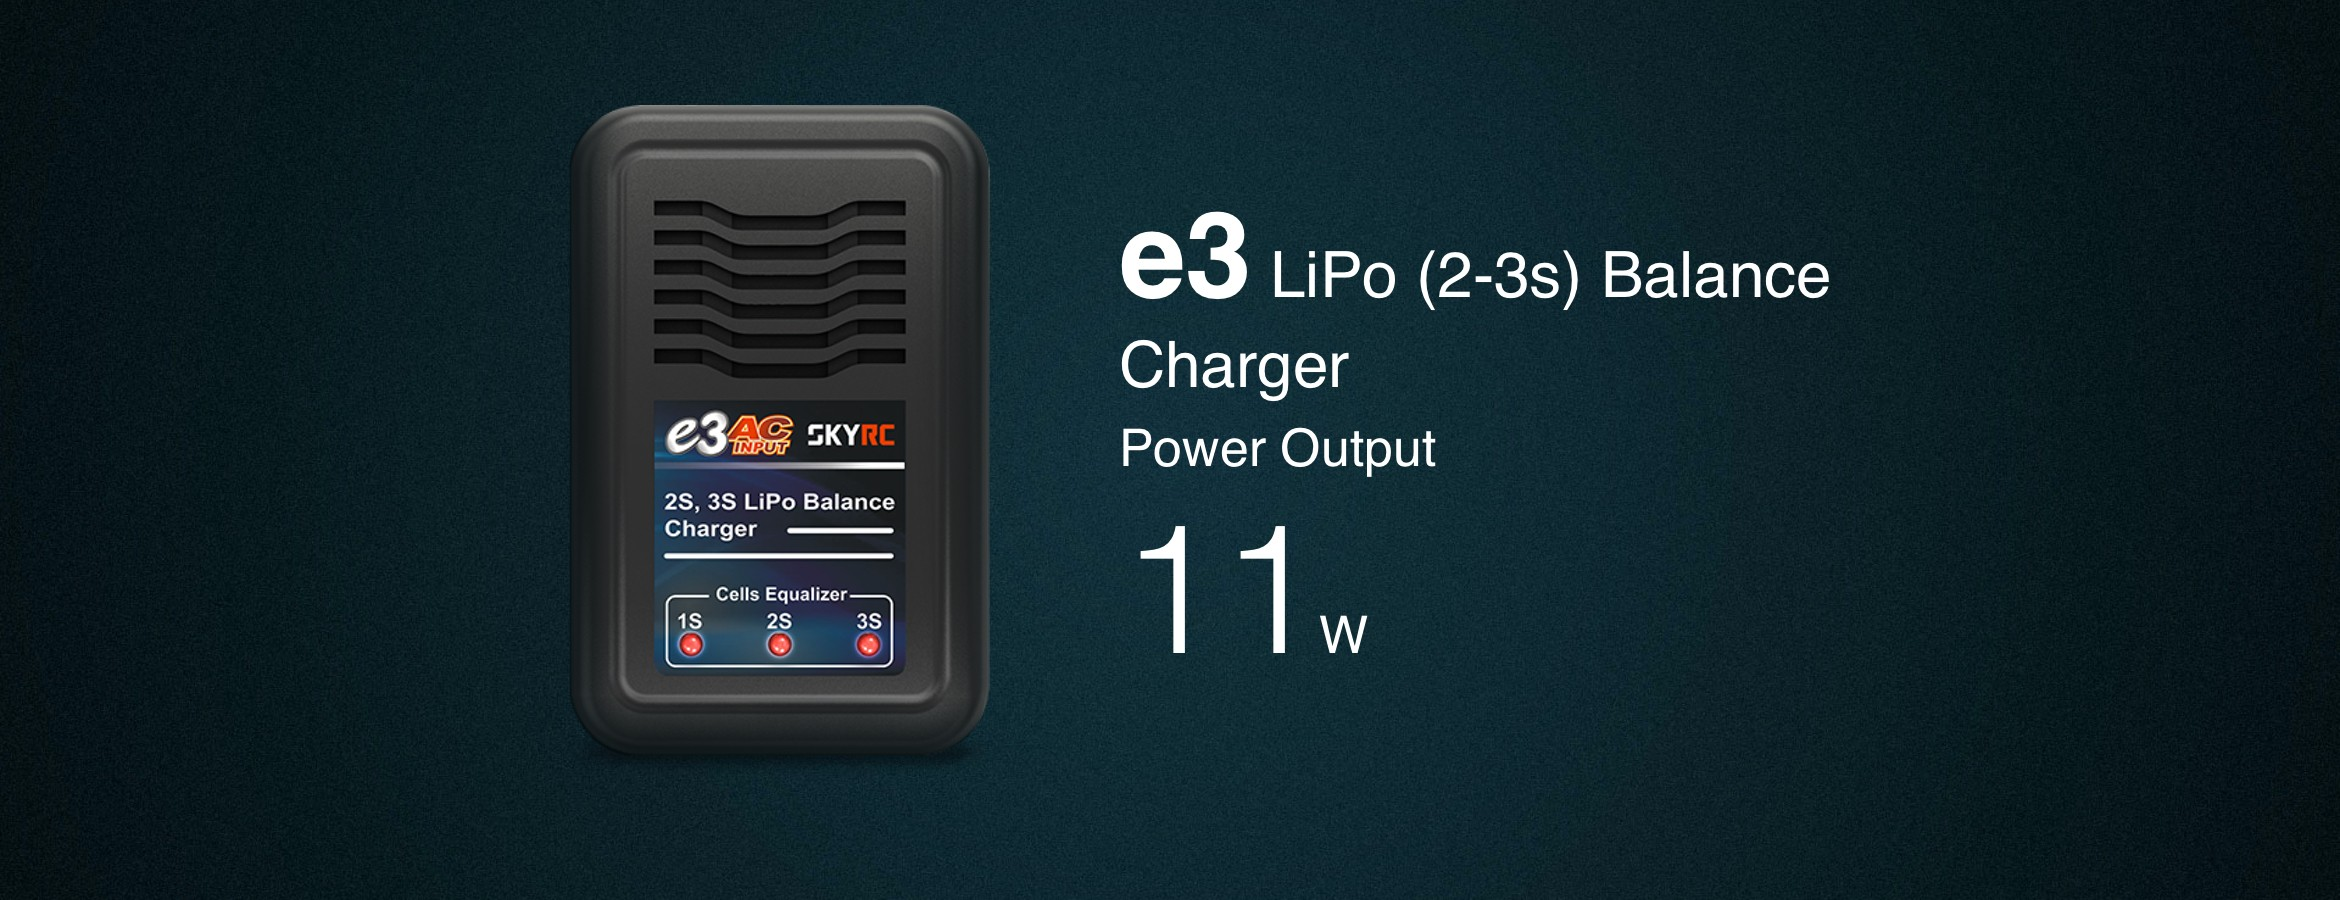 E3 Charger